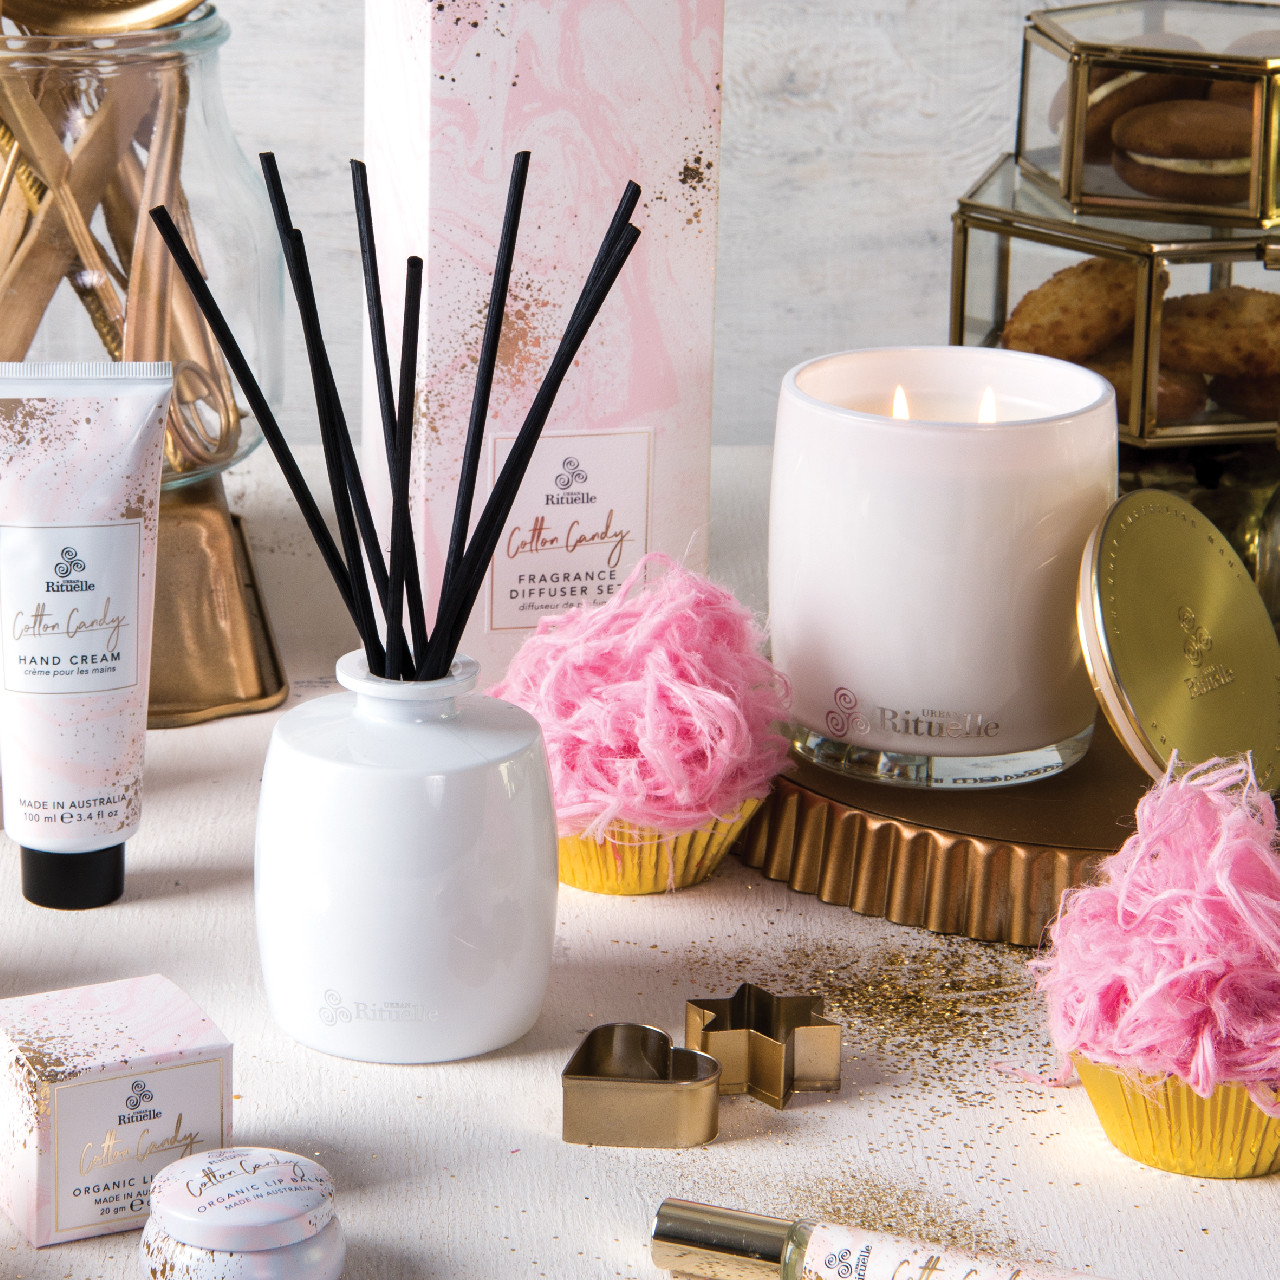 Sweet Treats - Cotton Candy - Fragrance Diffuser Set - Urban Rituelle